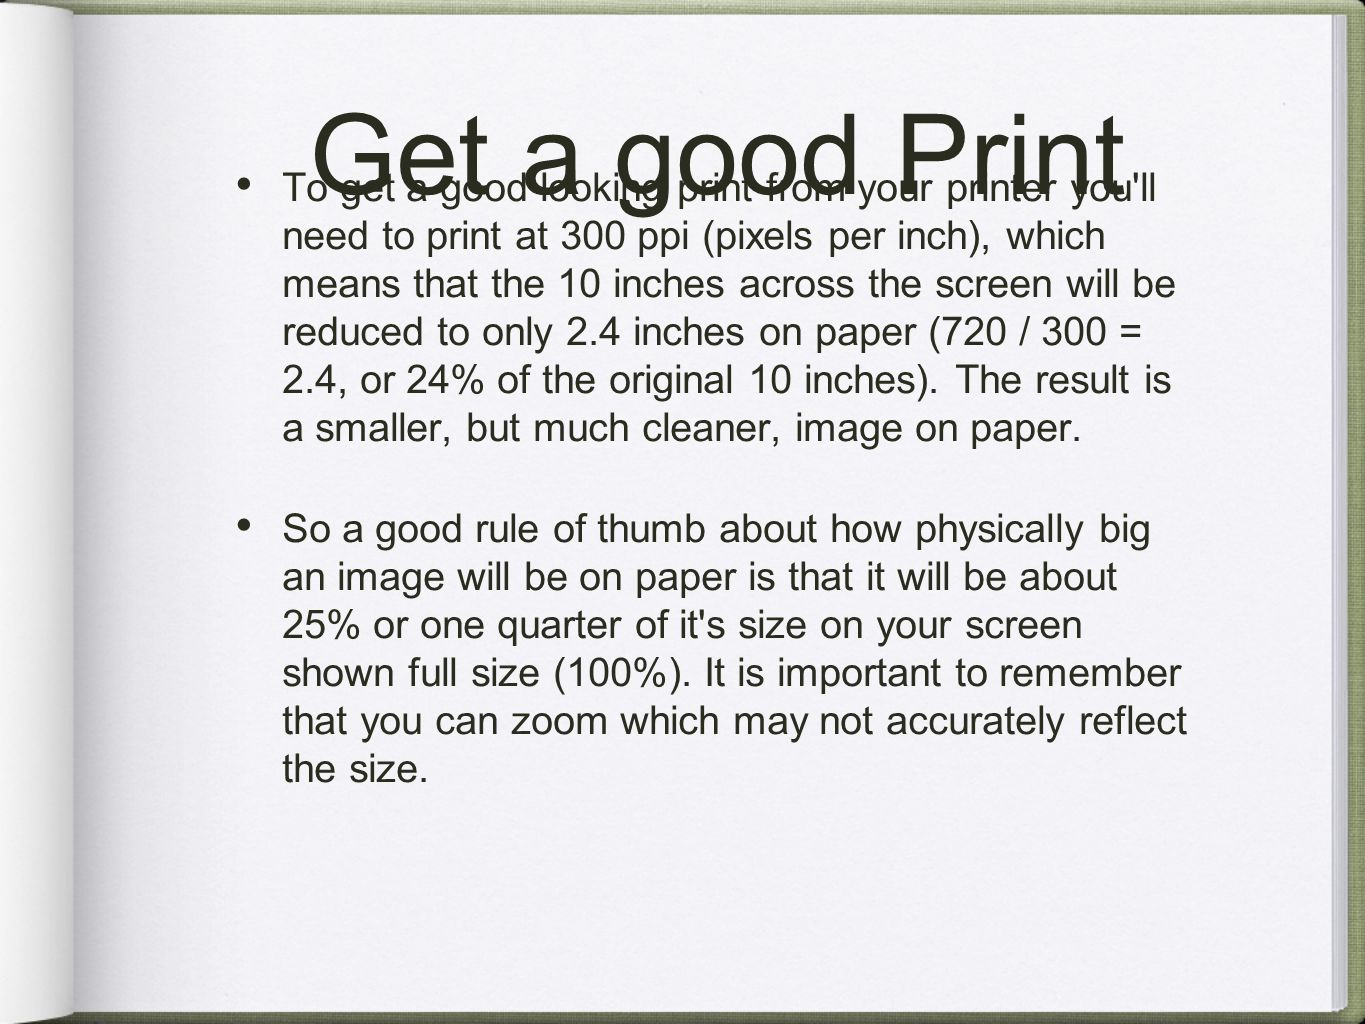 Get a good Print To get a good looking print from your printer you ll need to print at 300 ppi (pixels per inch), which means that the 10 inches across the screen will be reduced to only 2.4 inches on paper (720 / 300 = 2.4, or 24% of the original 10 inches).